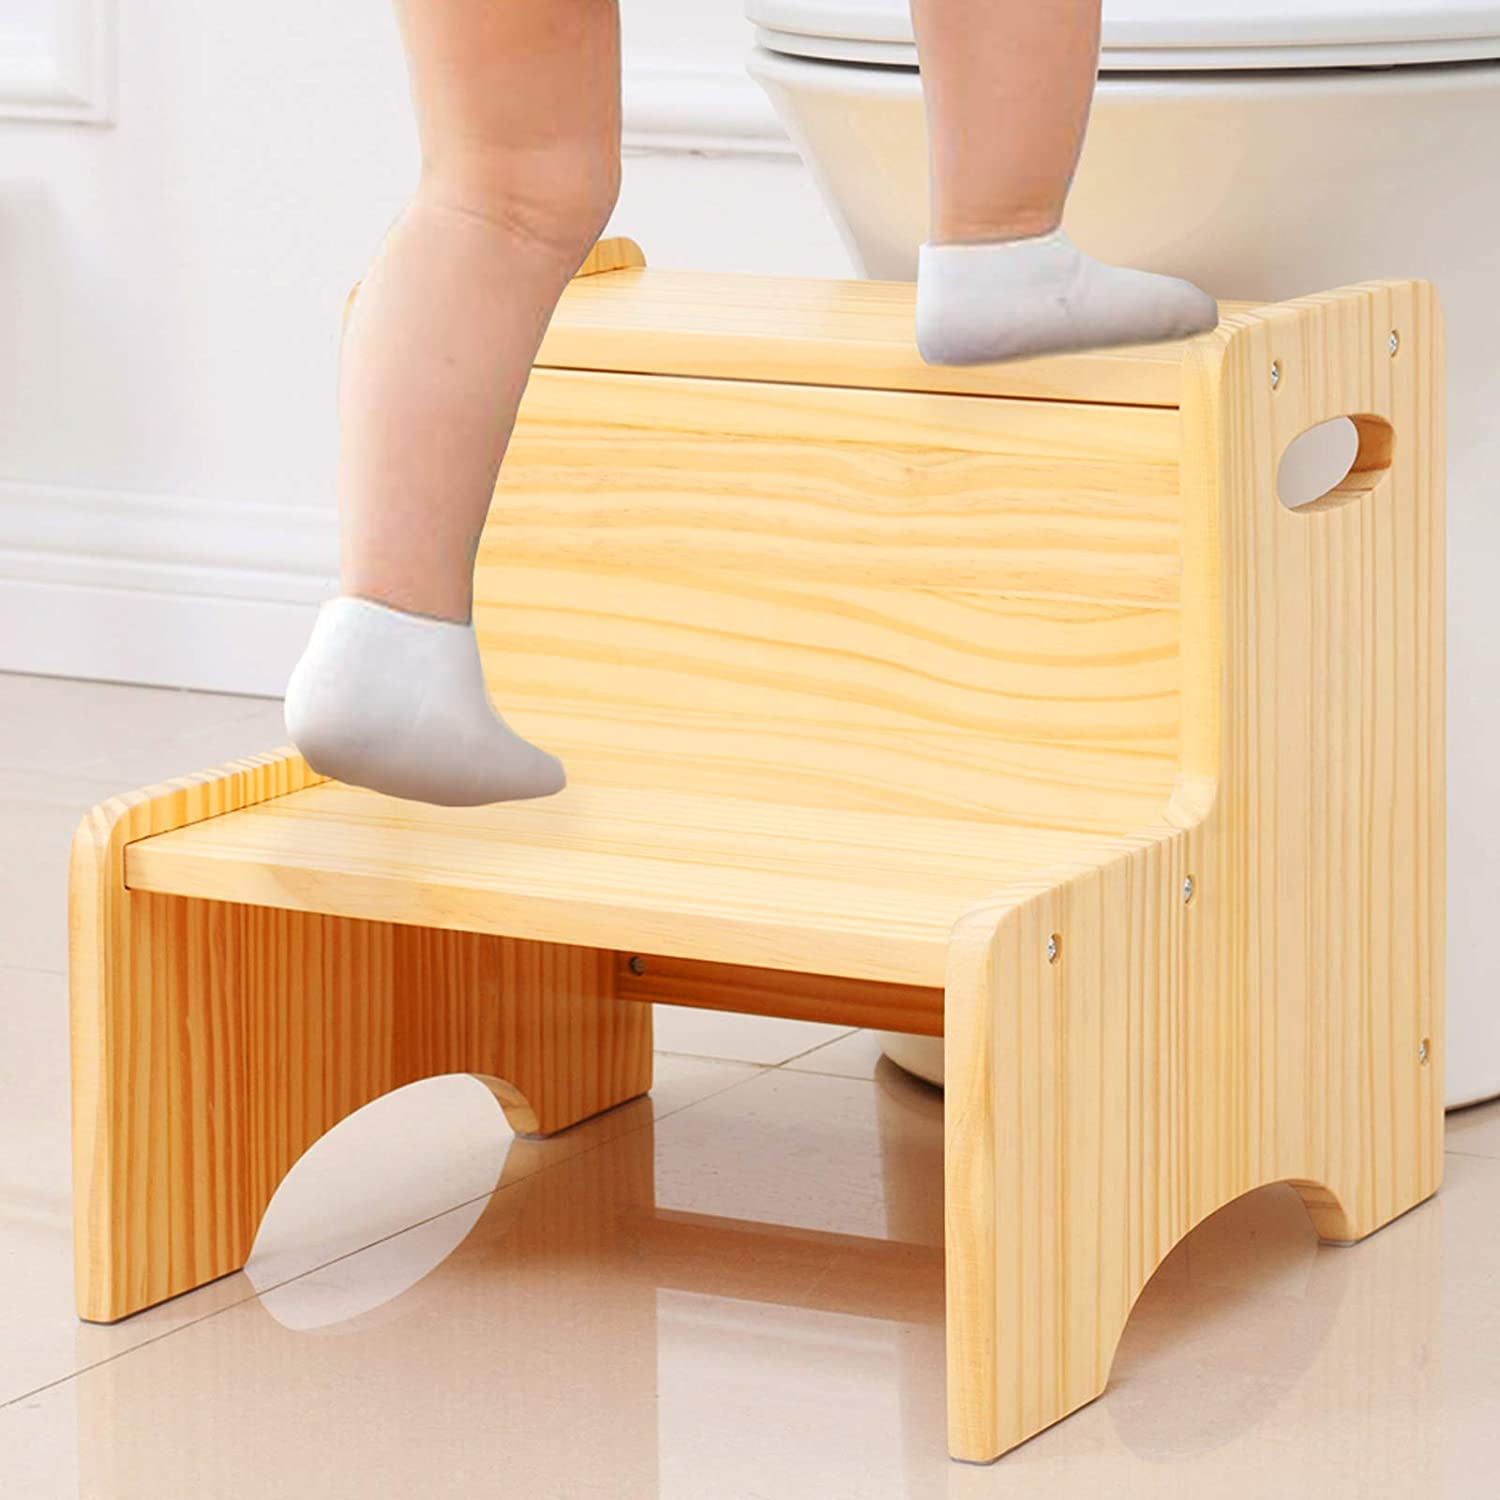 WOOD CITY Toddler Step Stool for Kids, Wooden Two Step Children's Stool with Handles, Bonus Non-Slip Pads for Safety, Bathroom Potty Stool & Kitchen Step Stools, Pine Wood